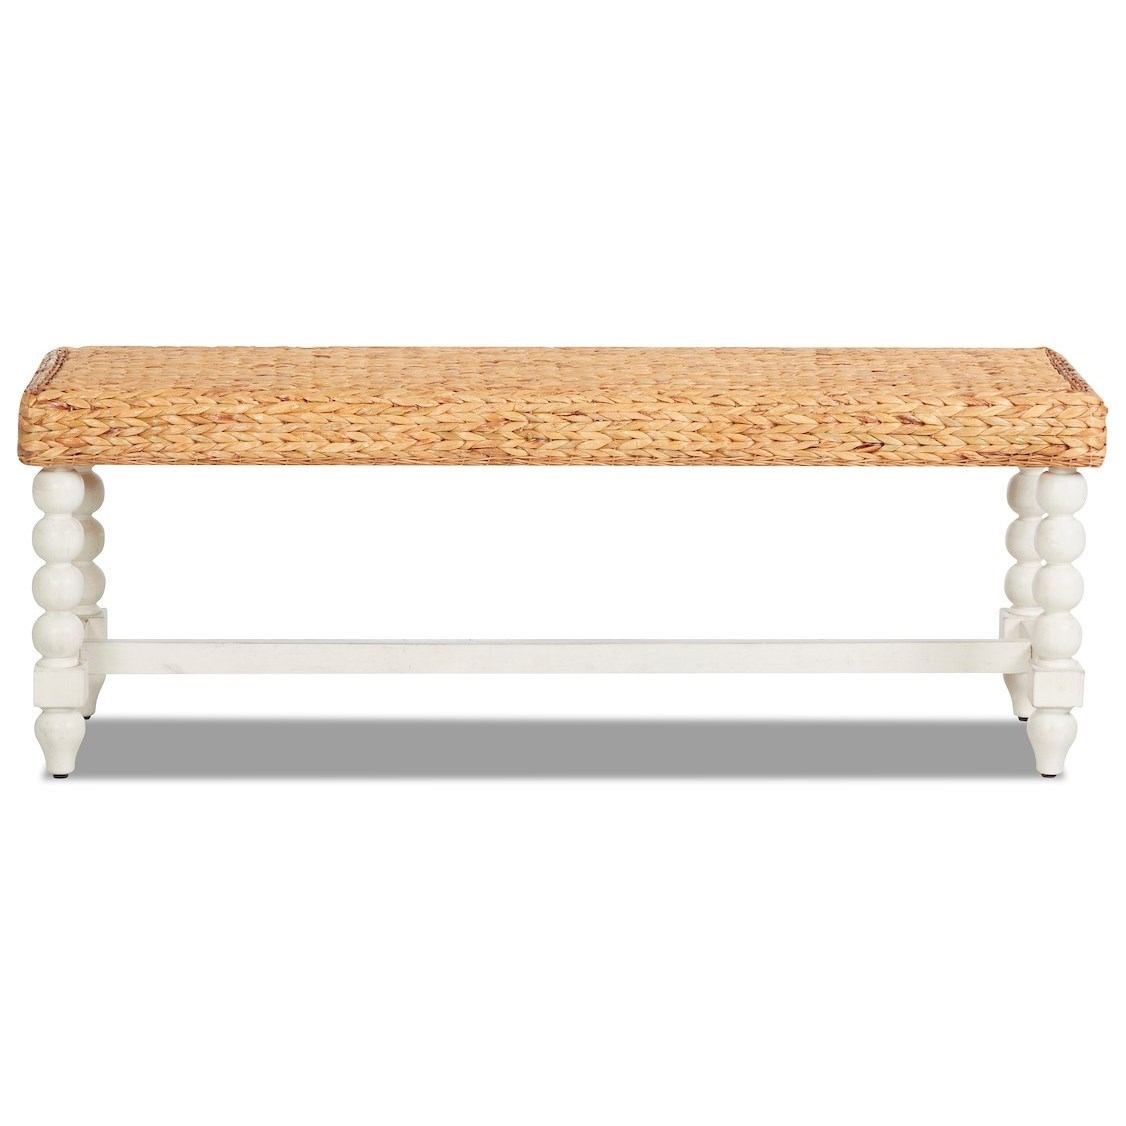 Nashville 16th Avenue Bench by Trisha Yearwood Home Collection by Klaussner at Johnny Janosik